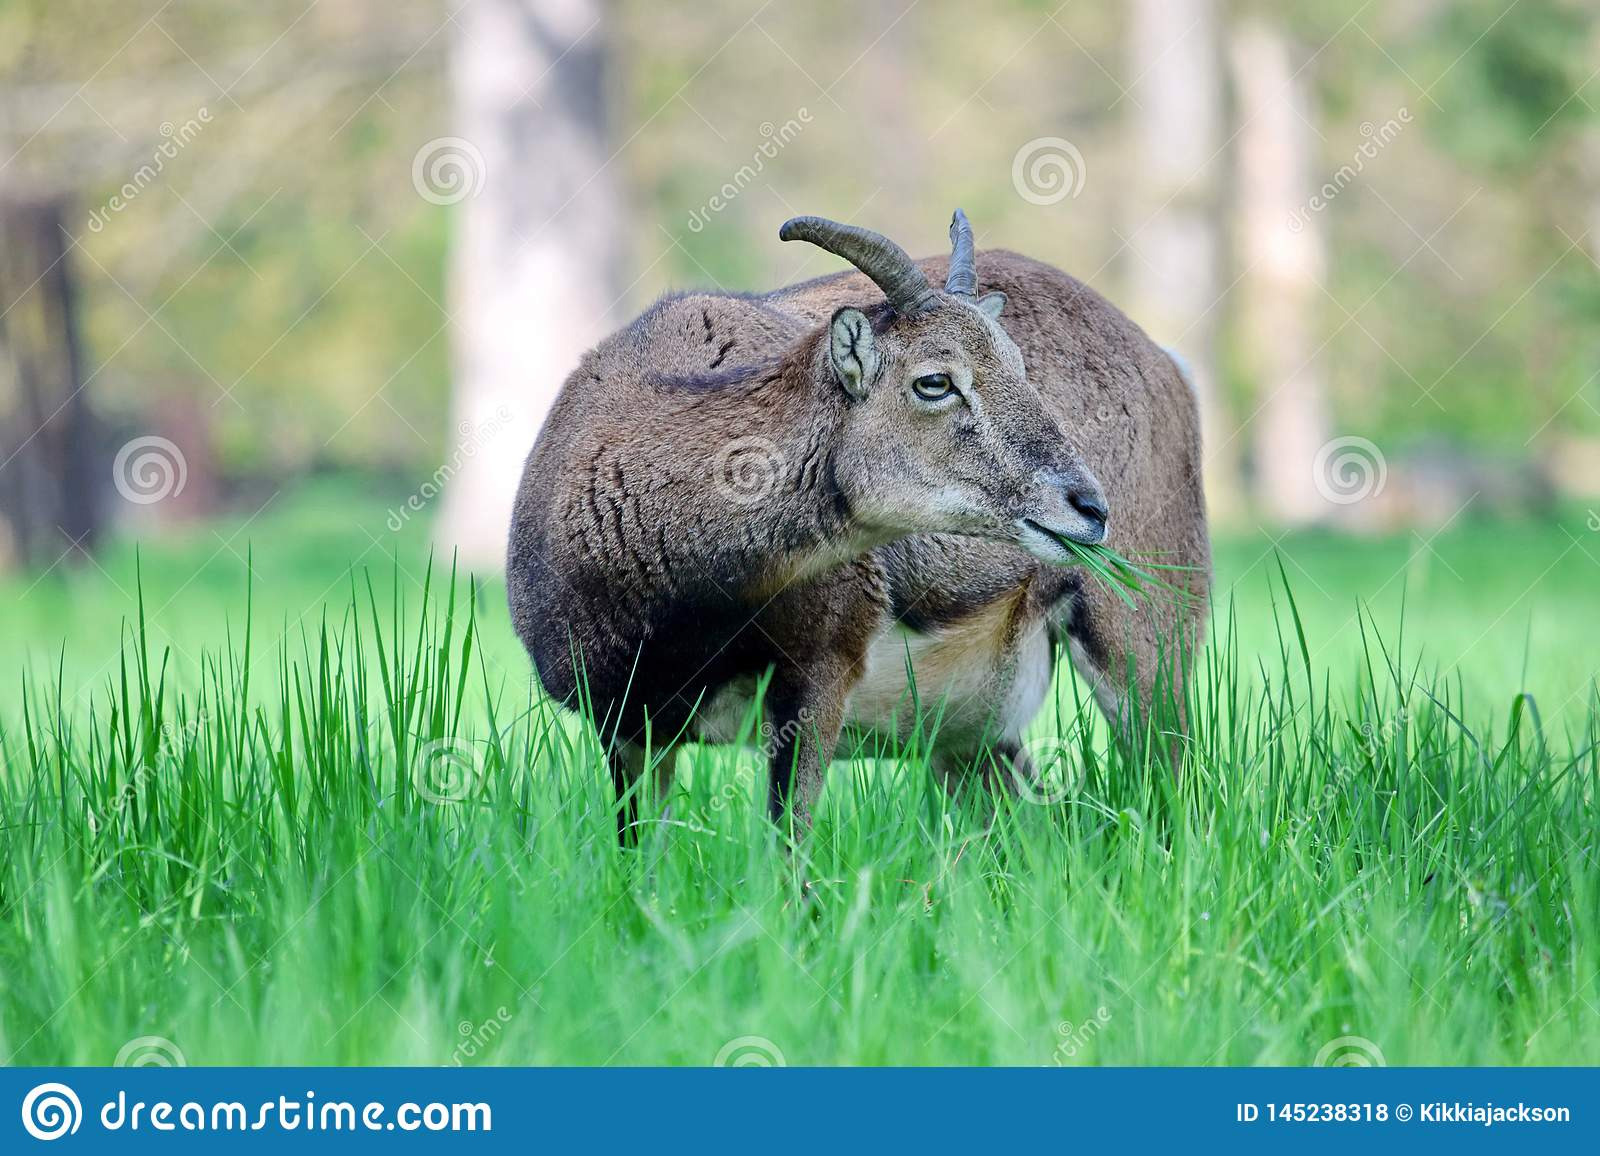 Mouflon Ovis Aries Musimon Eating Grass Closeup